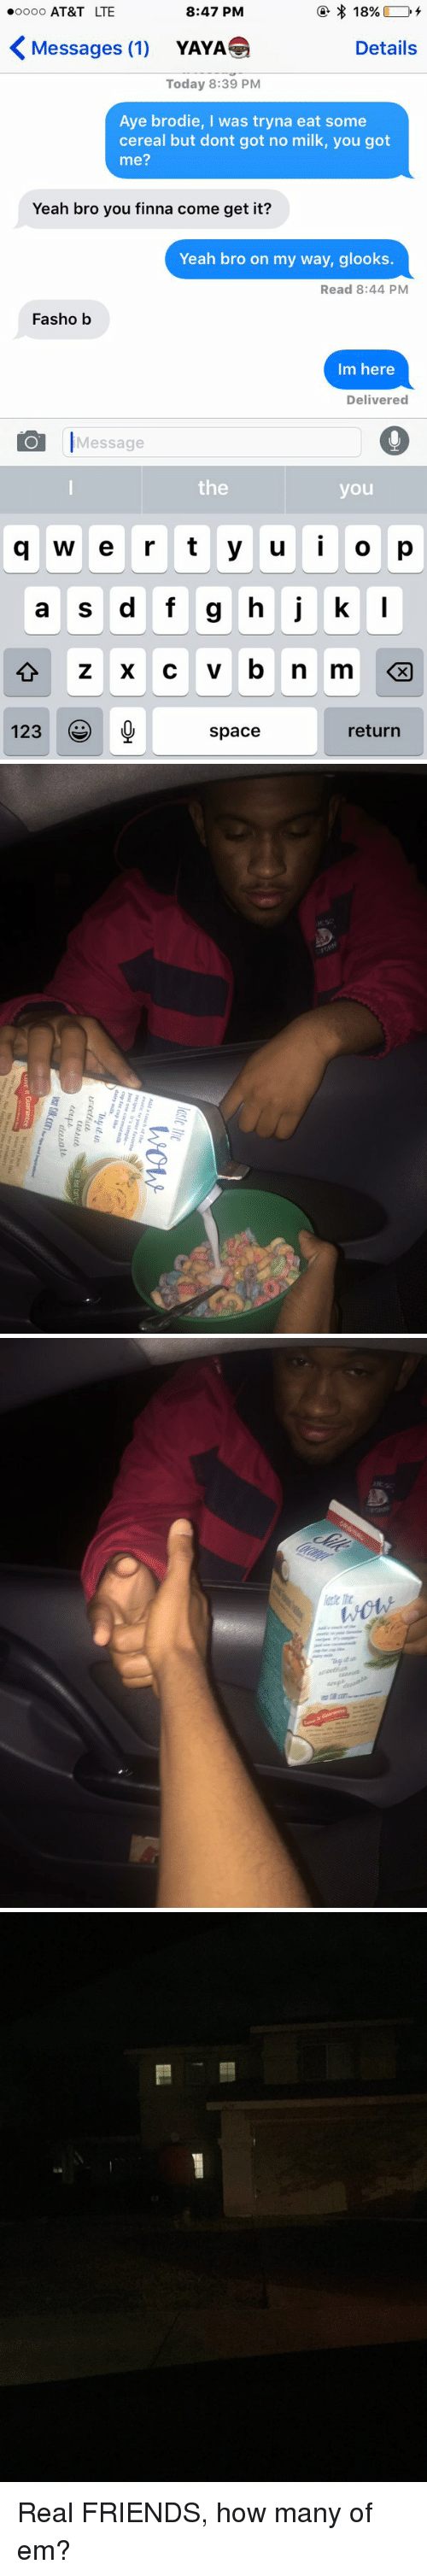 Friends, Funny, and Real Friends: 18% D  8:47 PM  ooooo AT&T LTE  Messages (1)  Details  YAYA  Today 8:39 PM  Aye brodie, I was tryna eat some  cereal but dont got no milk, you got  me?  Yeah bro you finna come get it?  Yeah bro on my way, glooks  Read 8:44 PM  Fasho b  Im here  Delivered  Message  the  you  g w e r t y u i o p  a s d f g h j k  l  123  return  space   isow  Add a  touch of the  exotic to your favorite  recipes It's simple-  just use  cup for cup like  dairy milk.  ymuke  Try it  urcotfitb  Tha Red  Cut ith  ect deet,O  deedle  It Guarantee  WedNTEjust  want you to Rae  herts. Not   Nc  inte The  Woll  远ORGT. Real FRIENDS, how many of em?